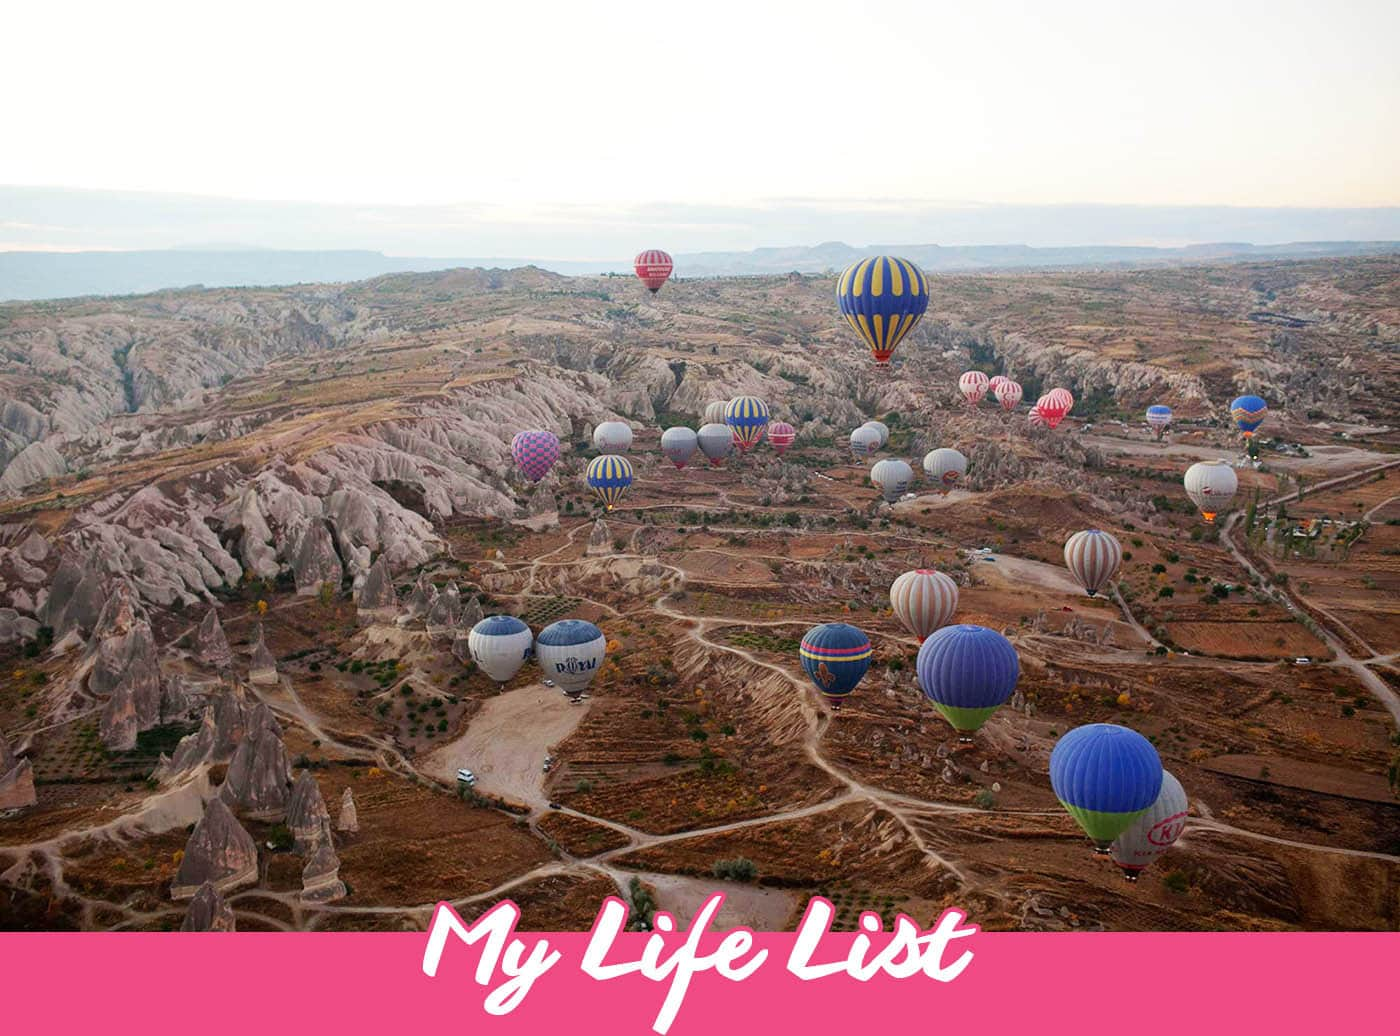 My Life List - 1,000 Things to do in Life | Bucket List Inspiration & Ideas | Bucket List Inspiration & Ideas